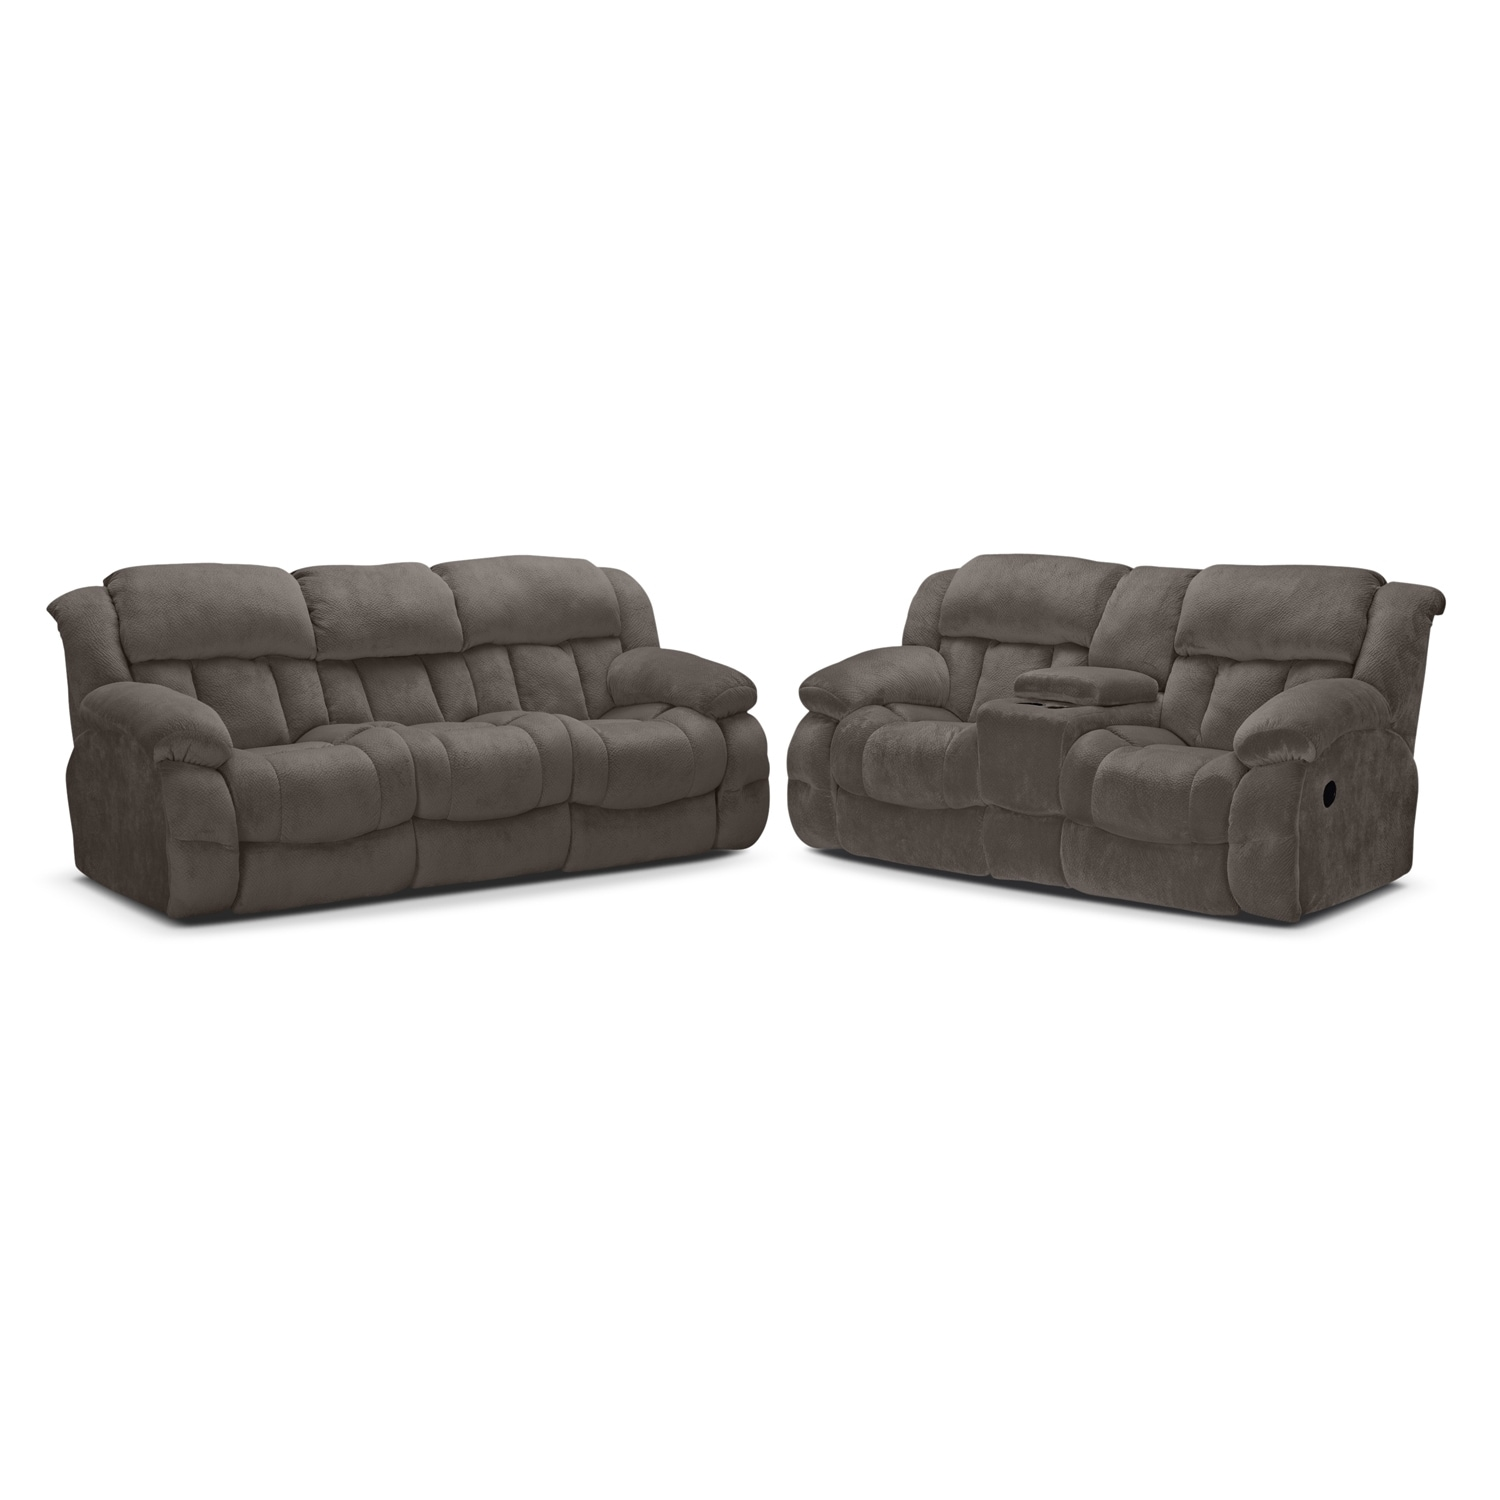 Living Room Furniture - Park City 2 Pc. Reclining Living Room